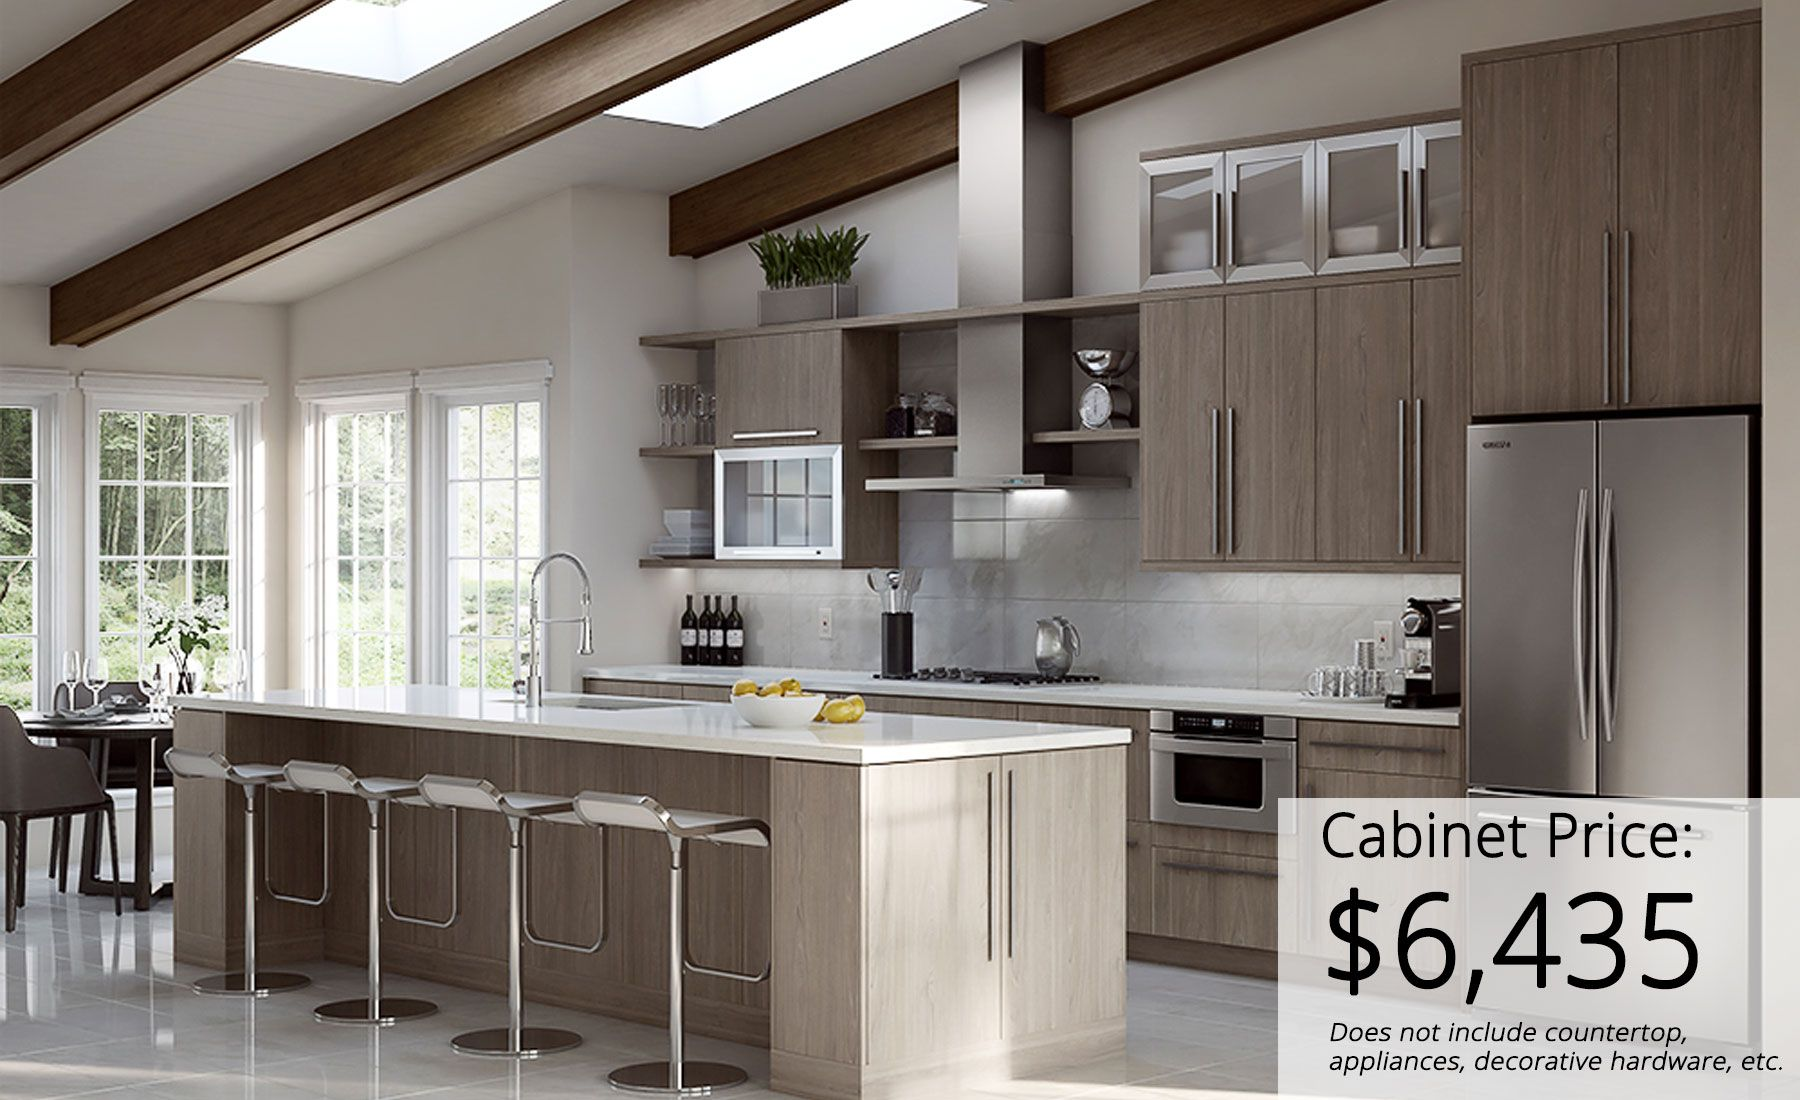 Hampton Bay Designer Series Designer Kitchen Cabinets available at